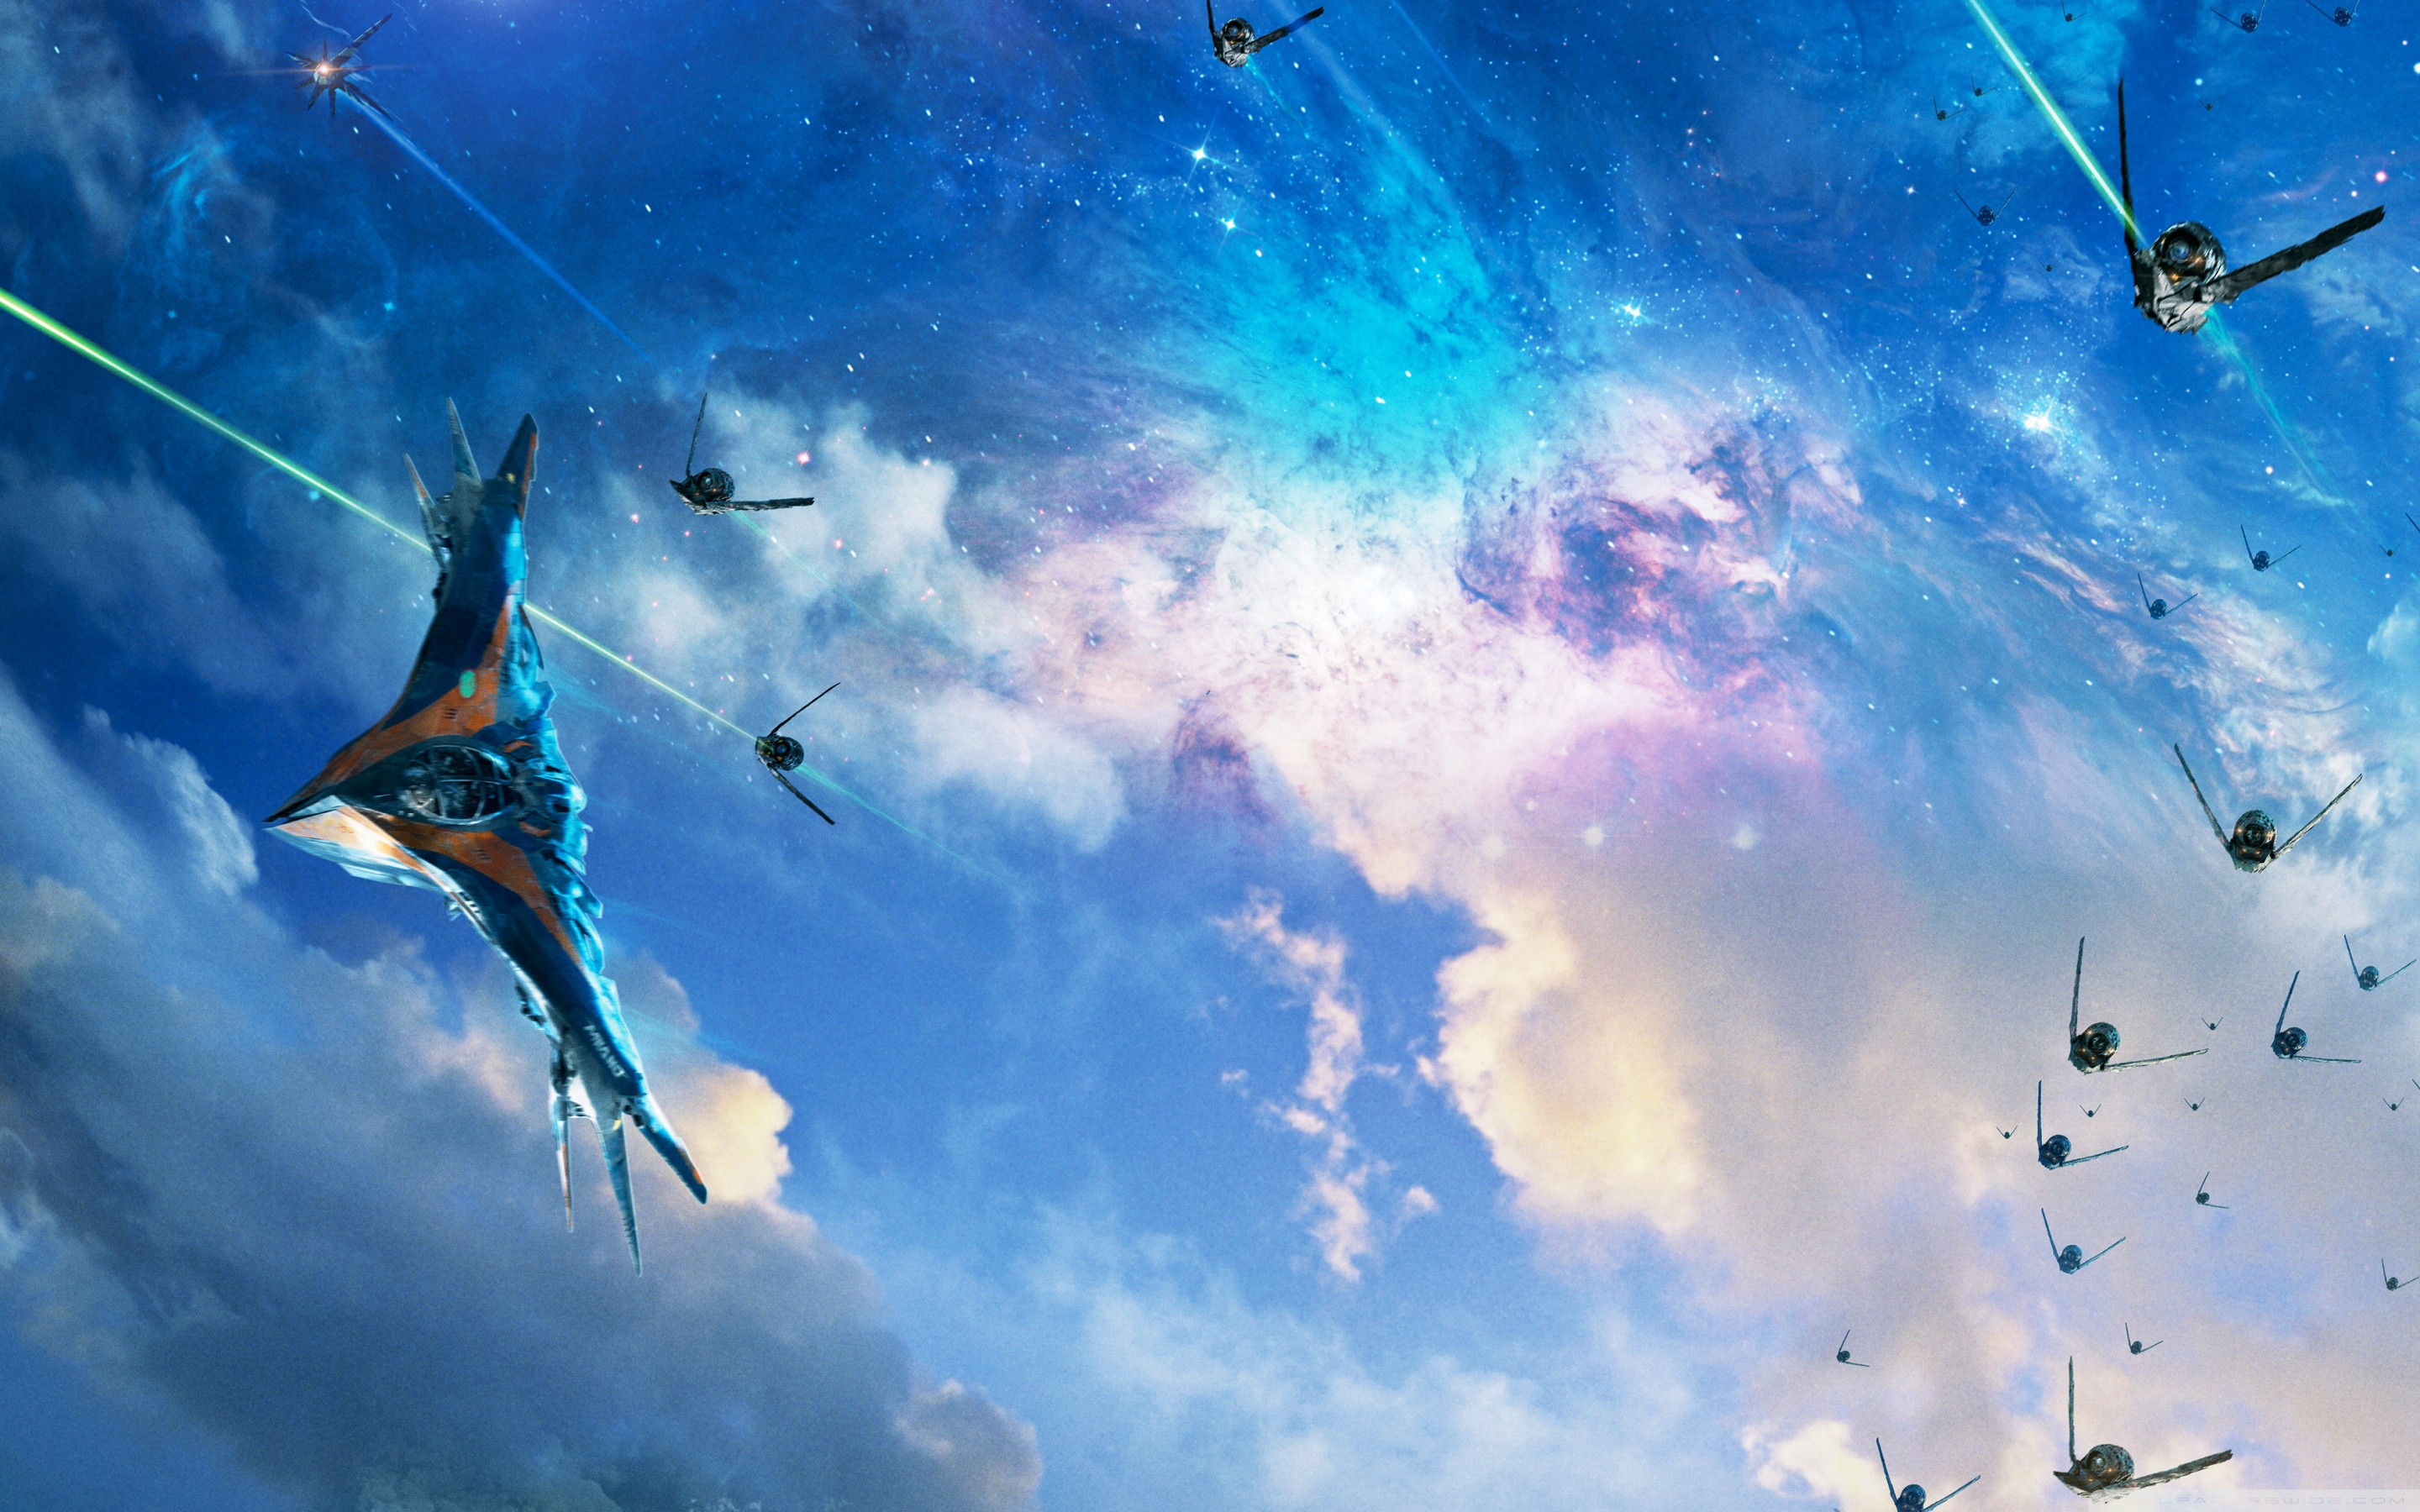 download Guardians of the Galaxy Wallpapers and Background 2880x1800